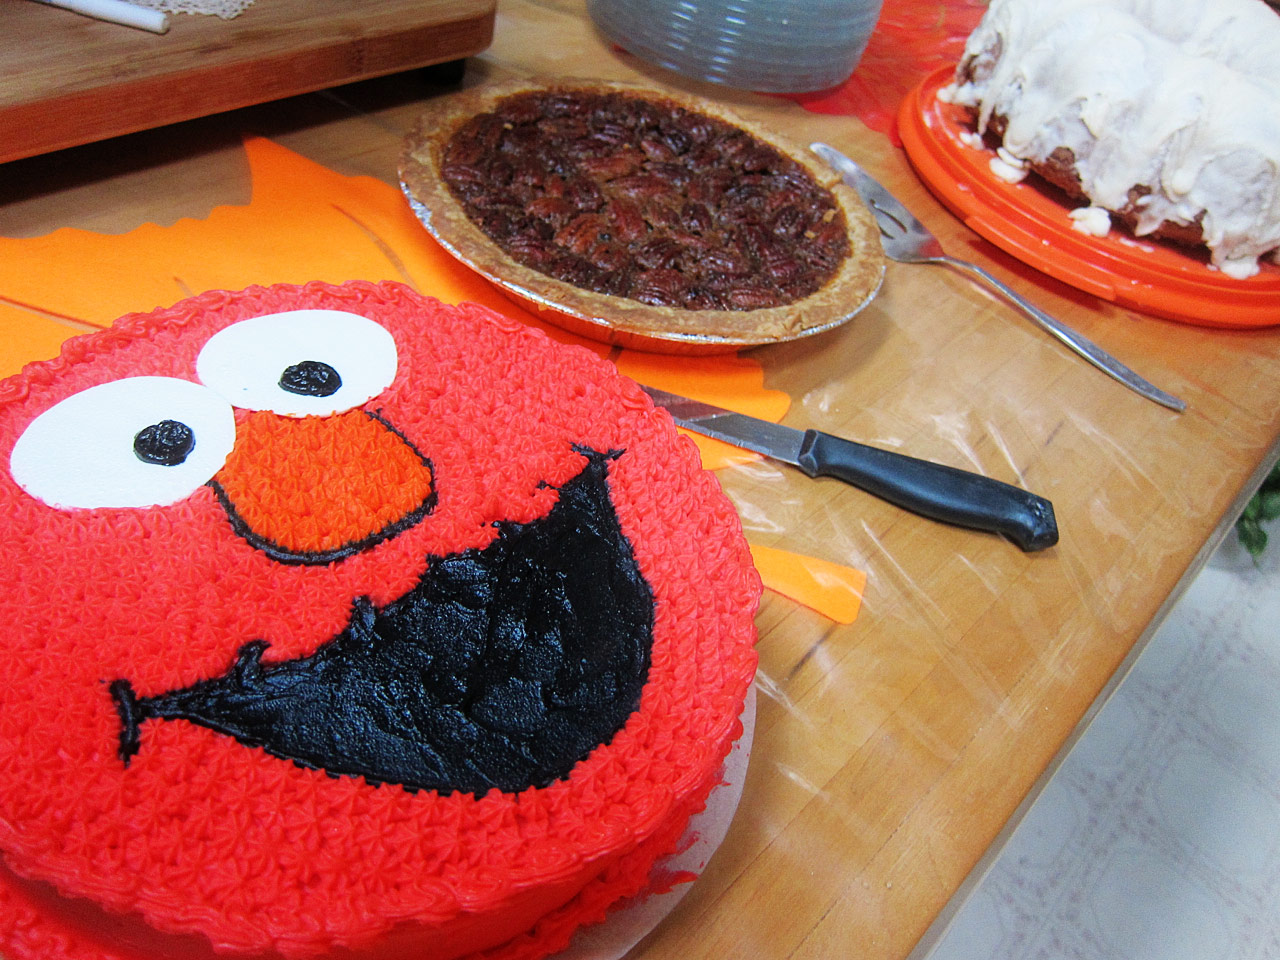 Elmo cake and other deserts